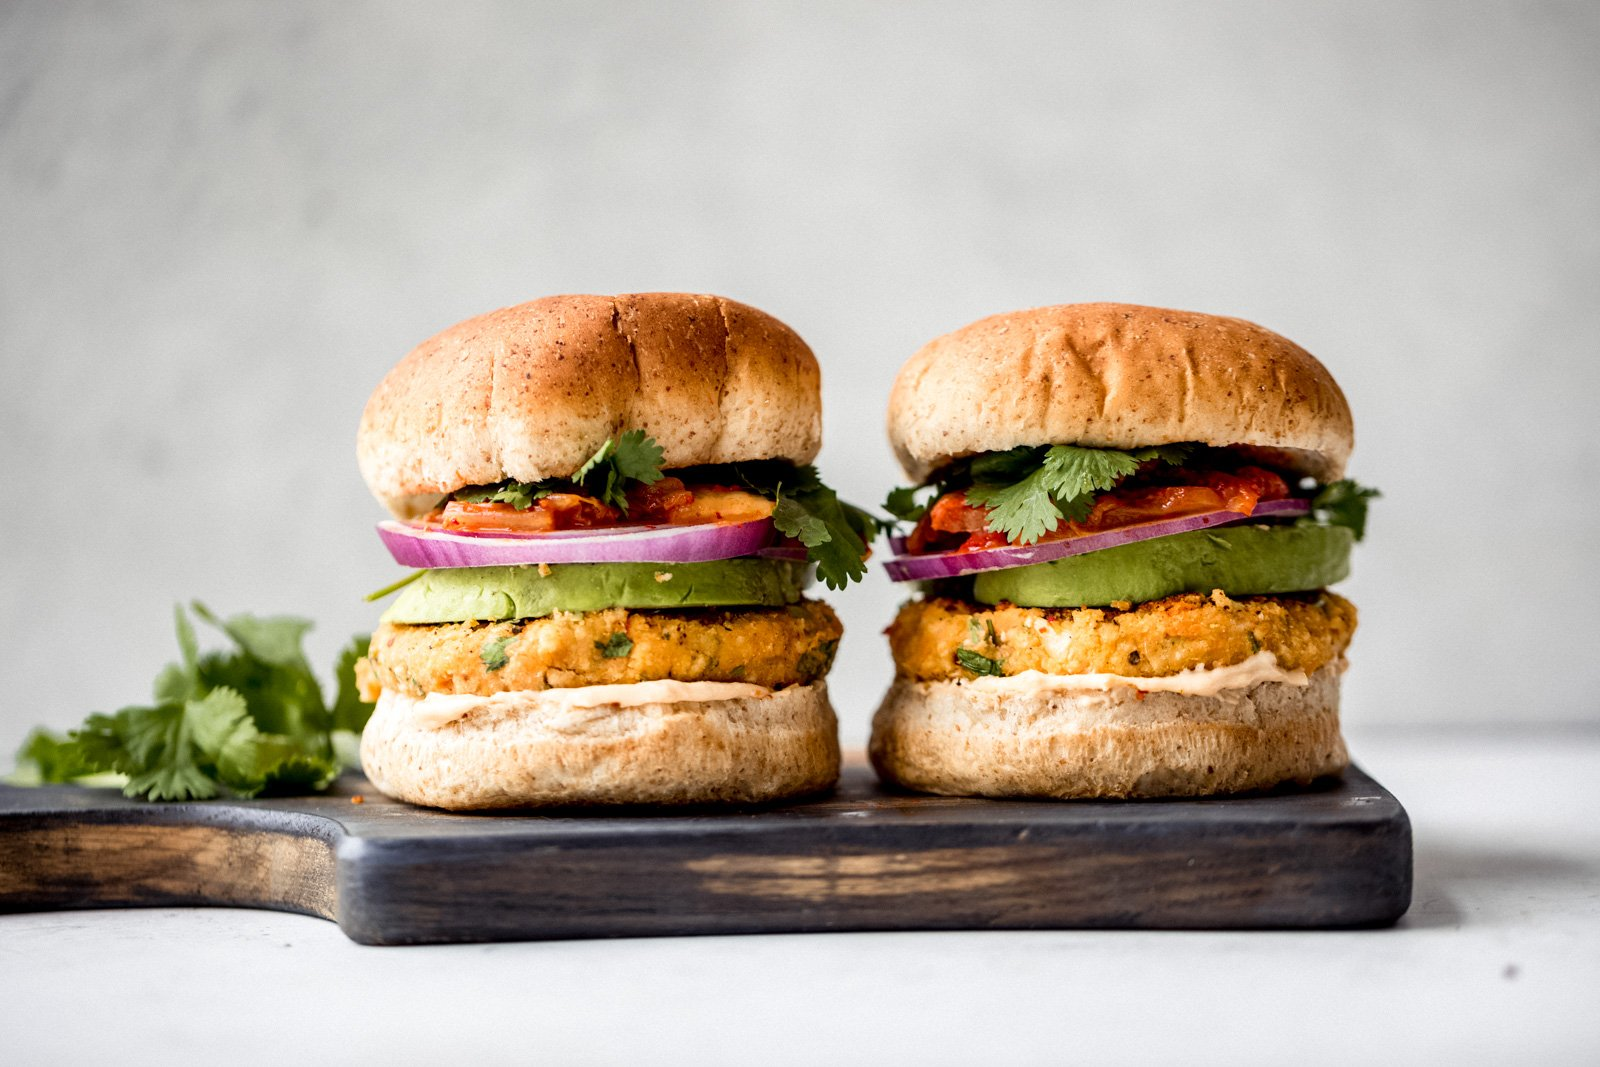 two vegan sweet potato burgers on a wooden cutting board